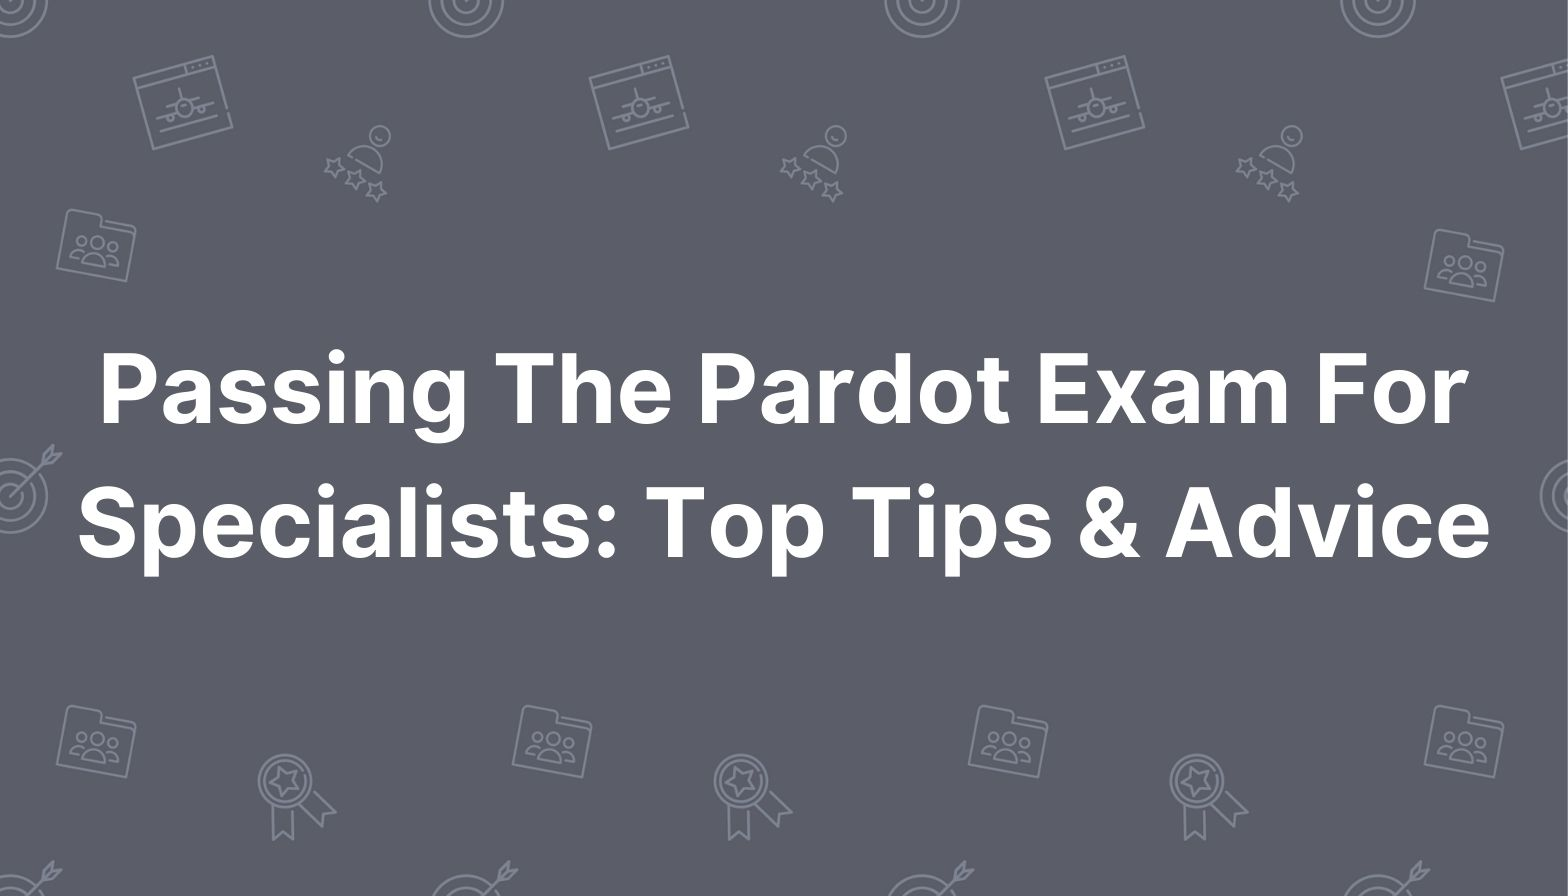 Blog Feature - Passing The Pardot Exam For Specialists: Top Tips & Advice